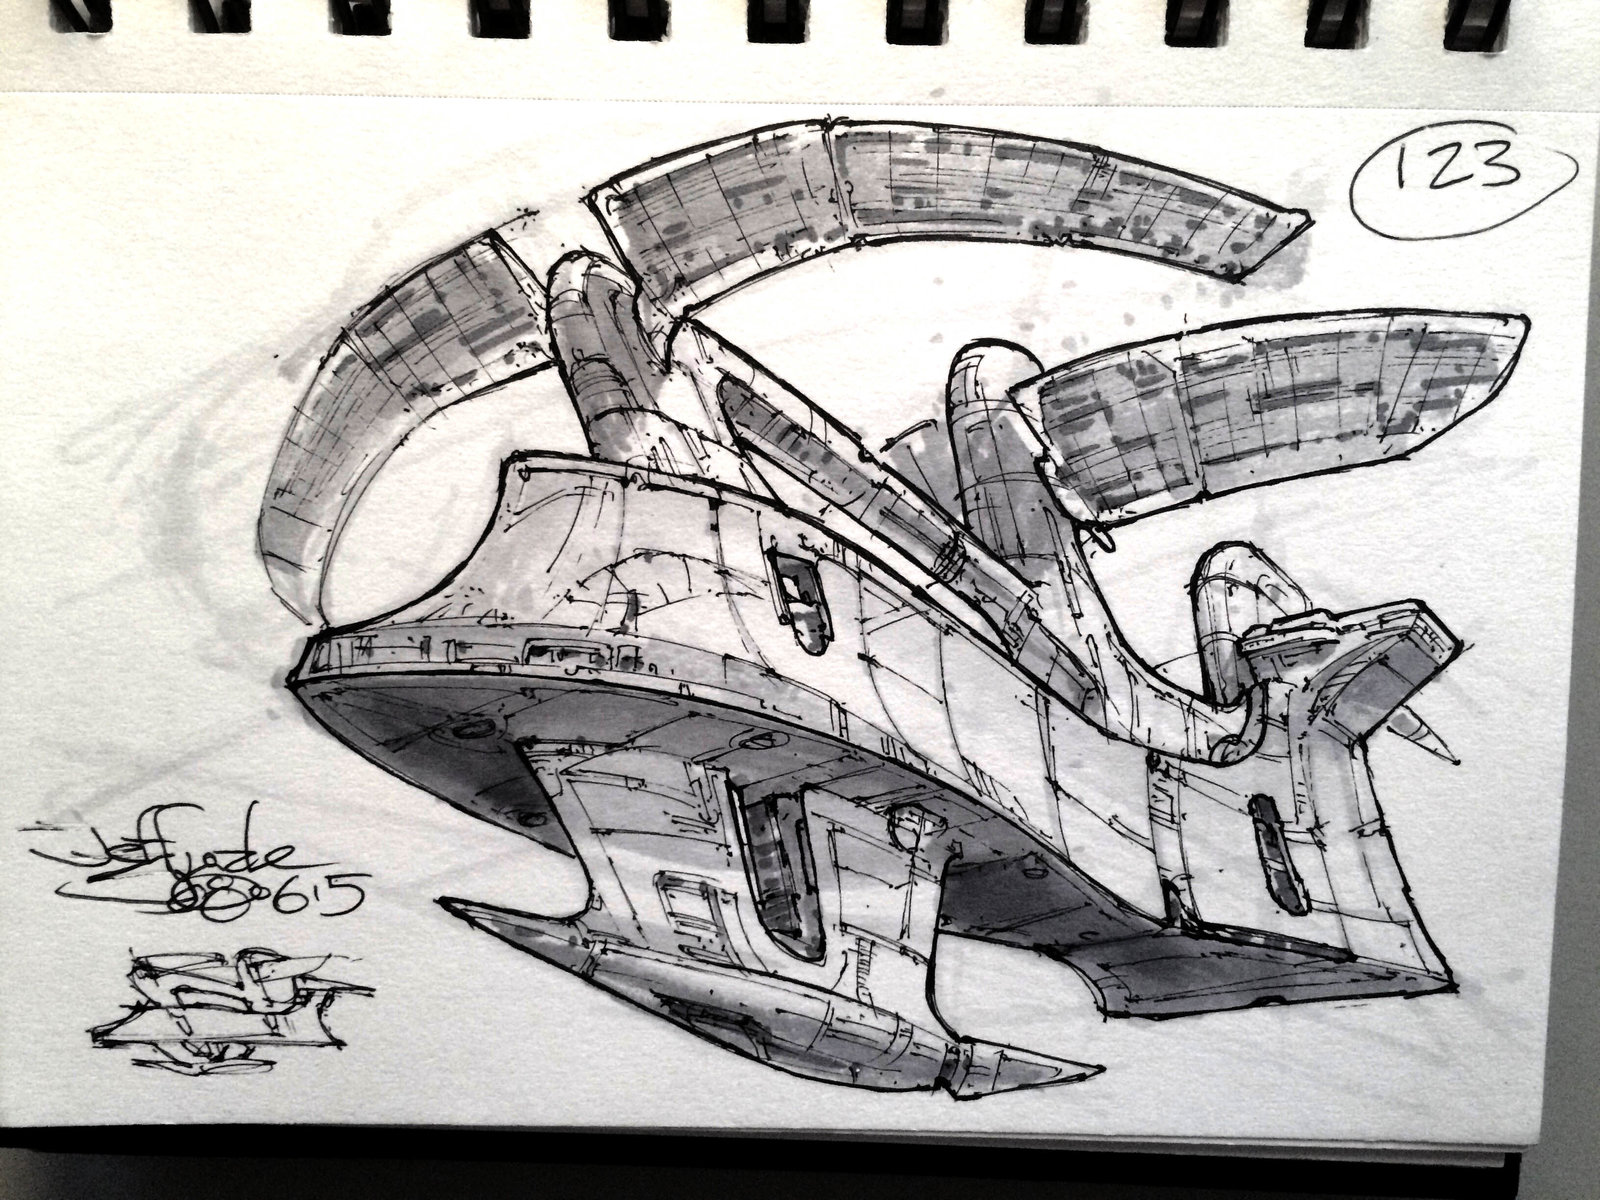 SpaceshipADay 123